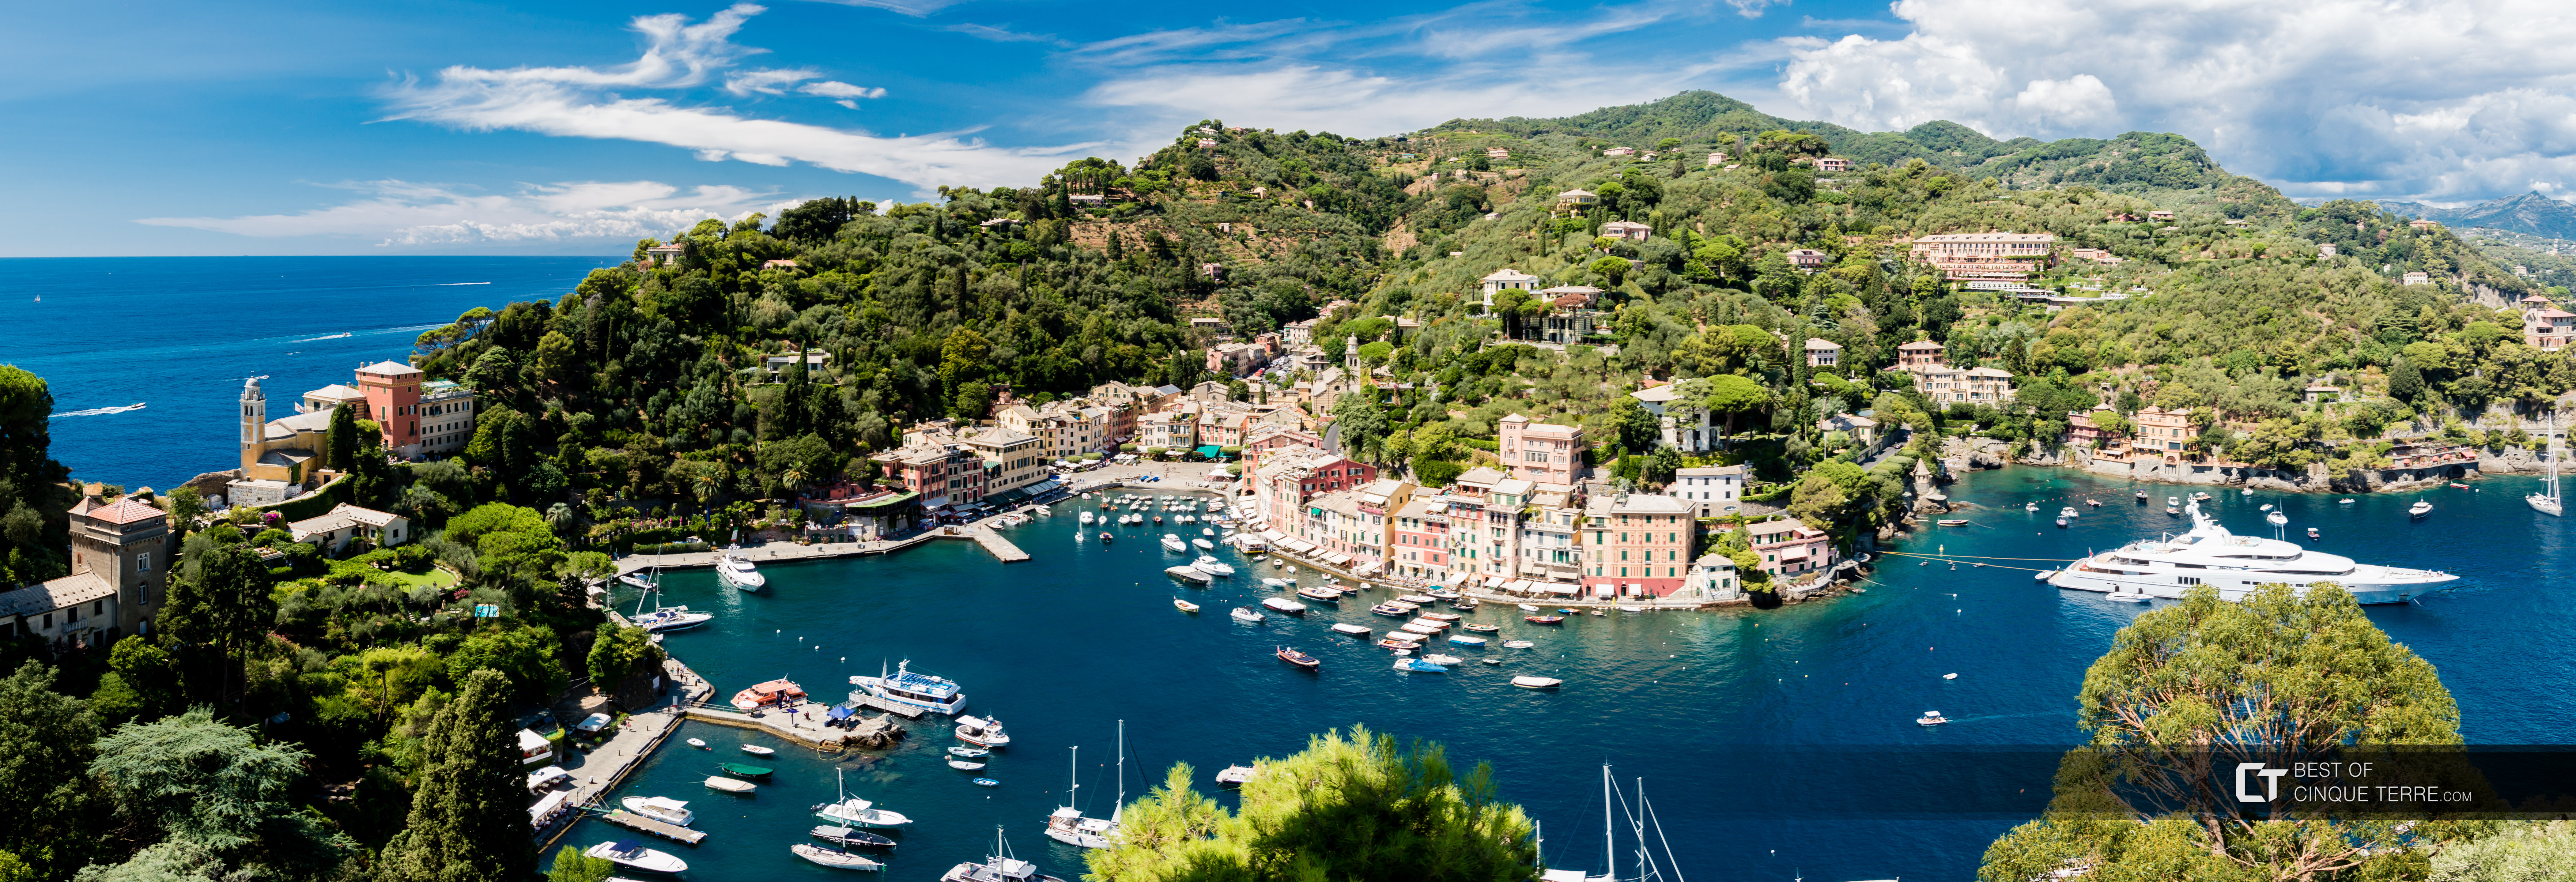 Bird's eye view of the bay, Portofino, Italy